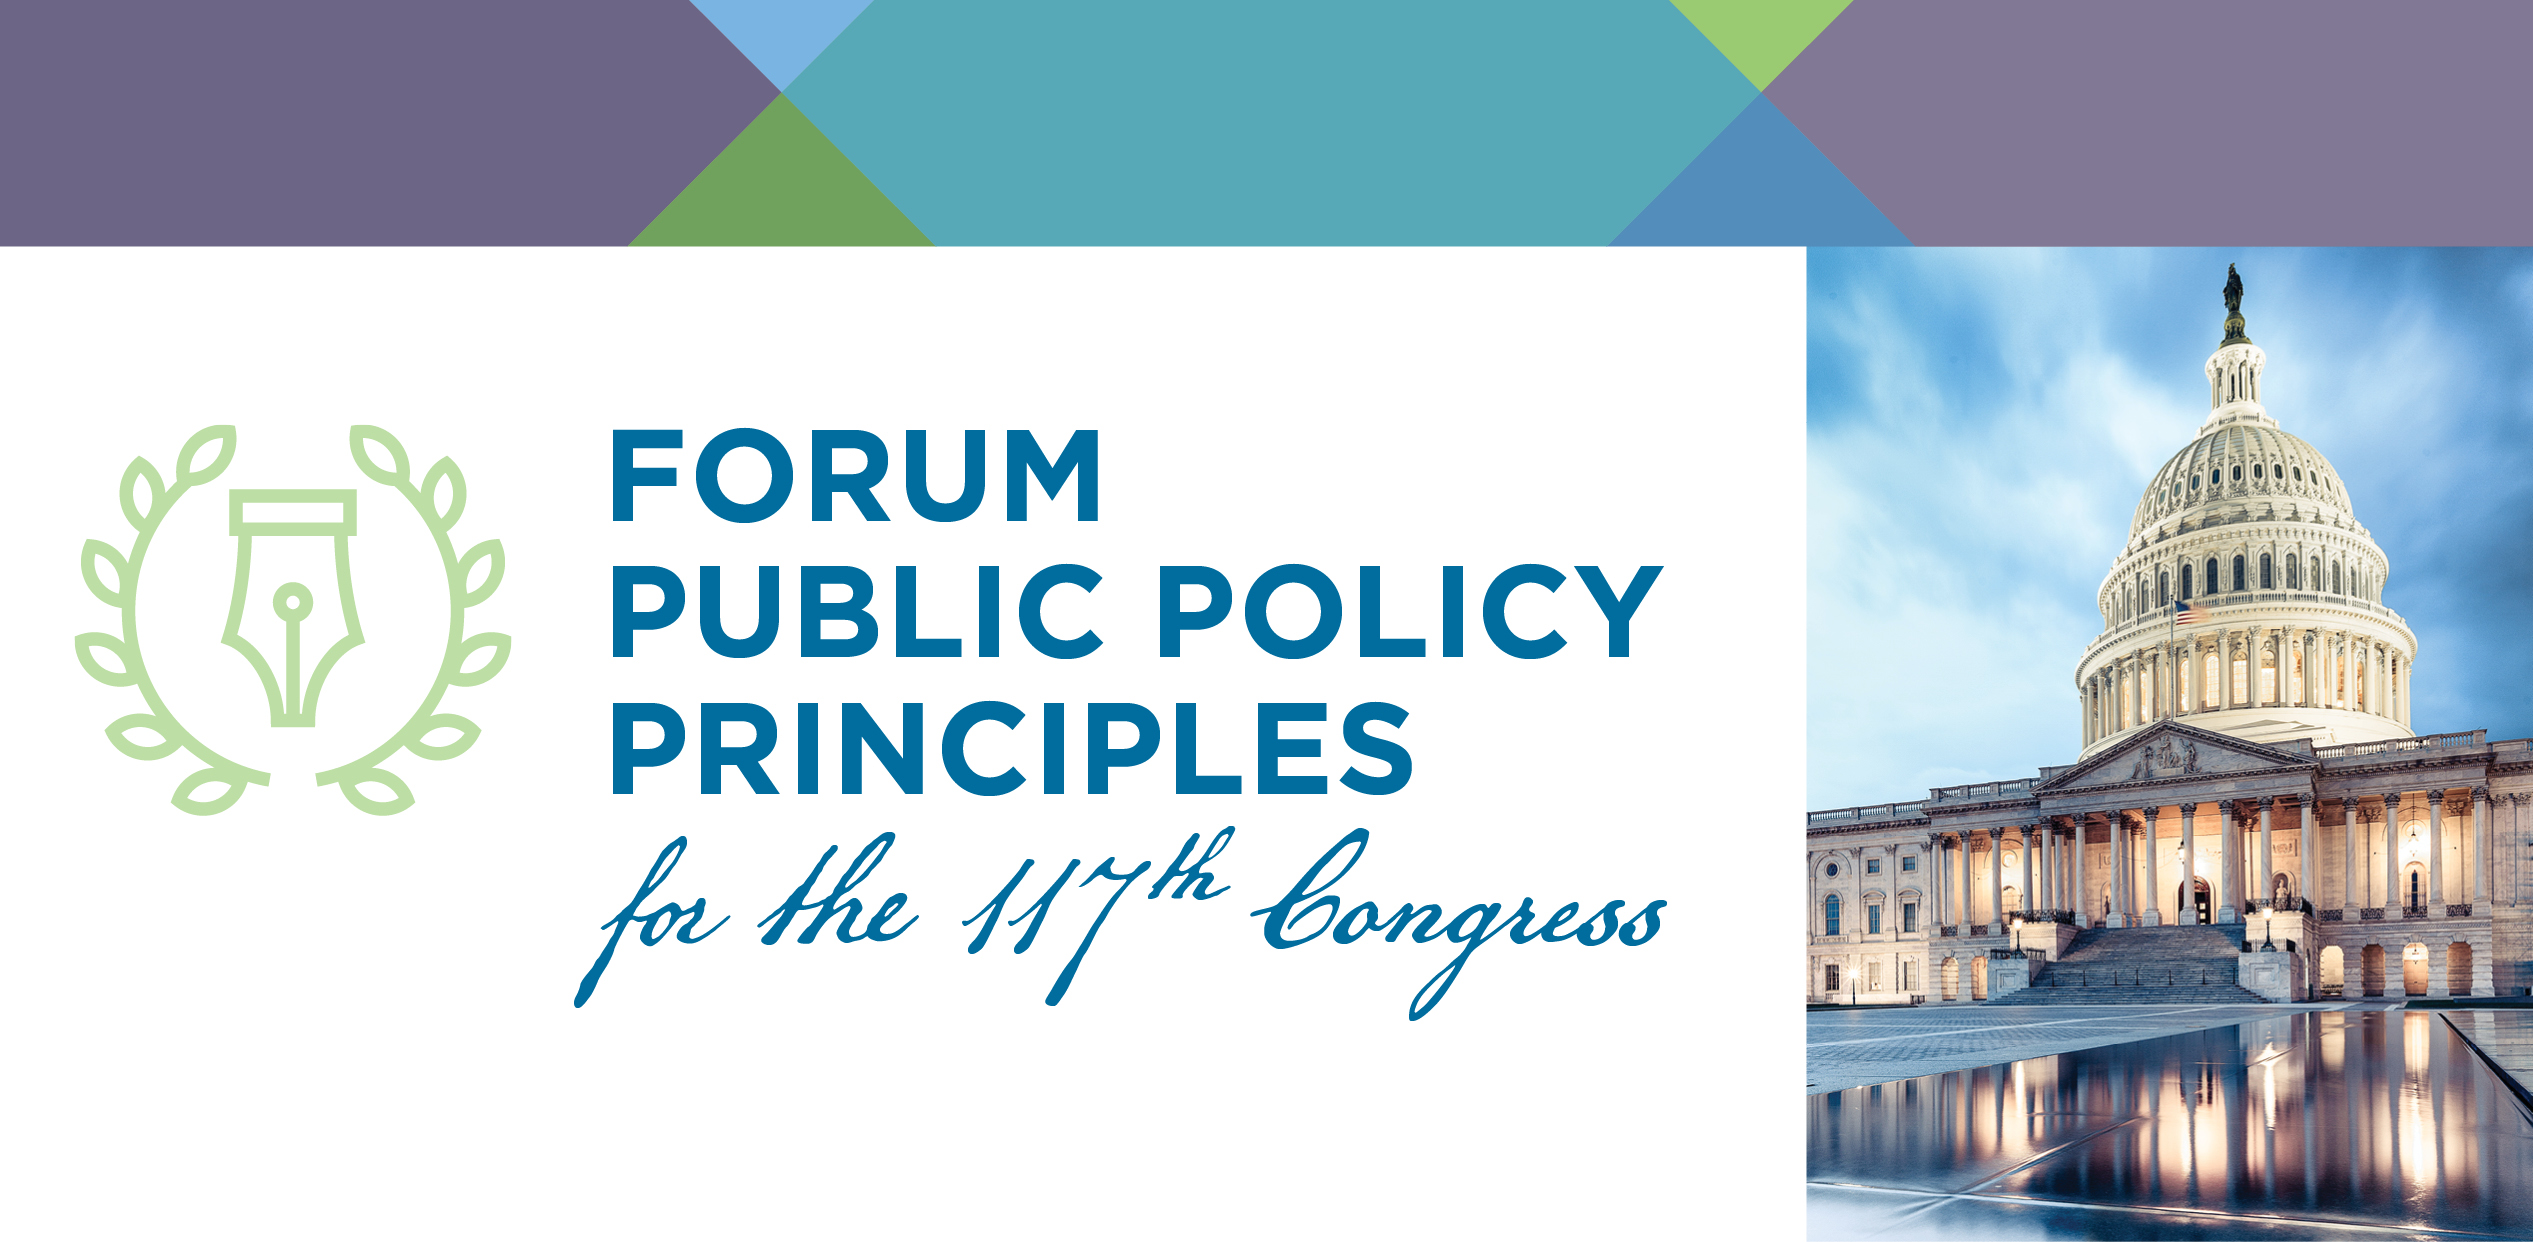 Forum Public Policy Principles for the 117th Congress